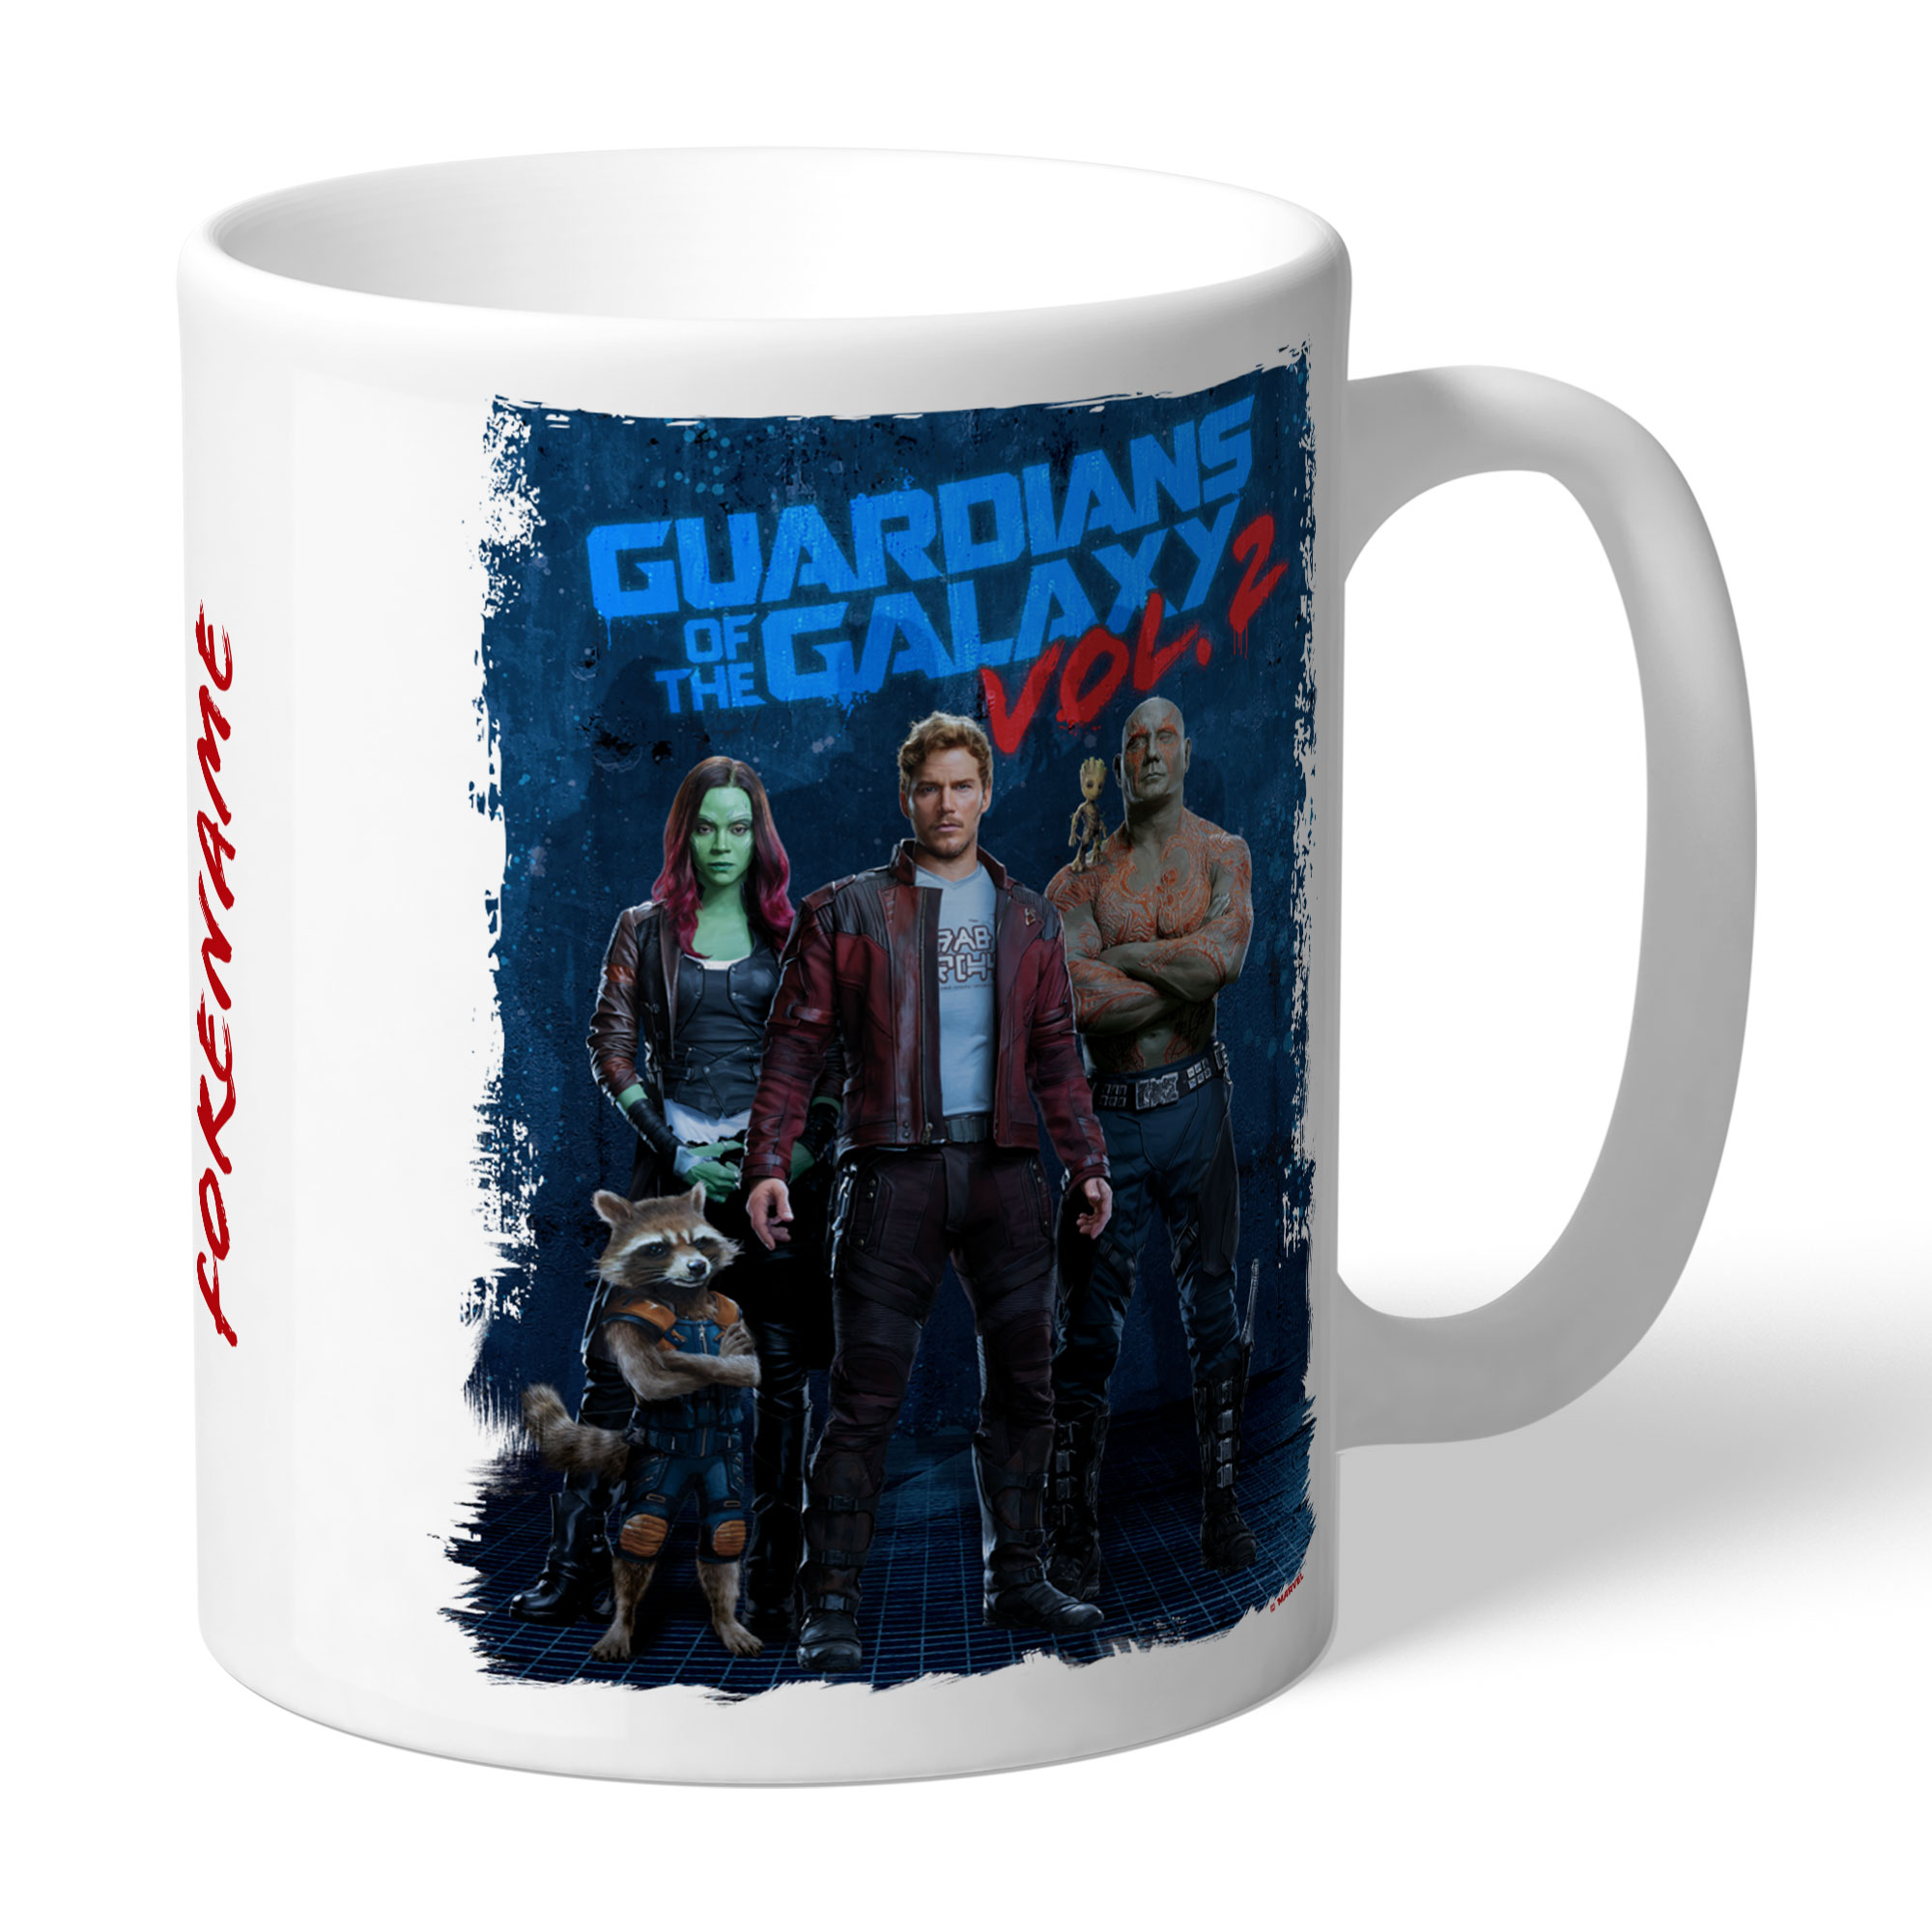 Marvel Guardians of the Galaxy Grunge Mug